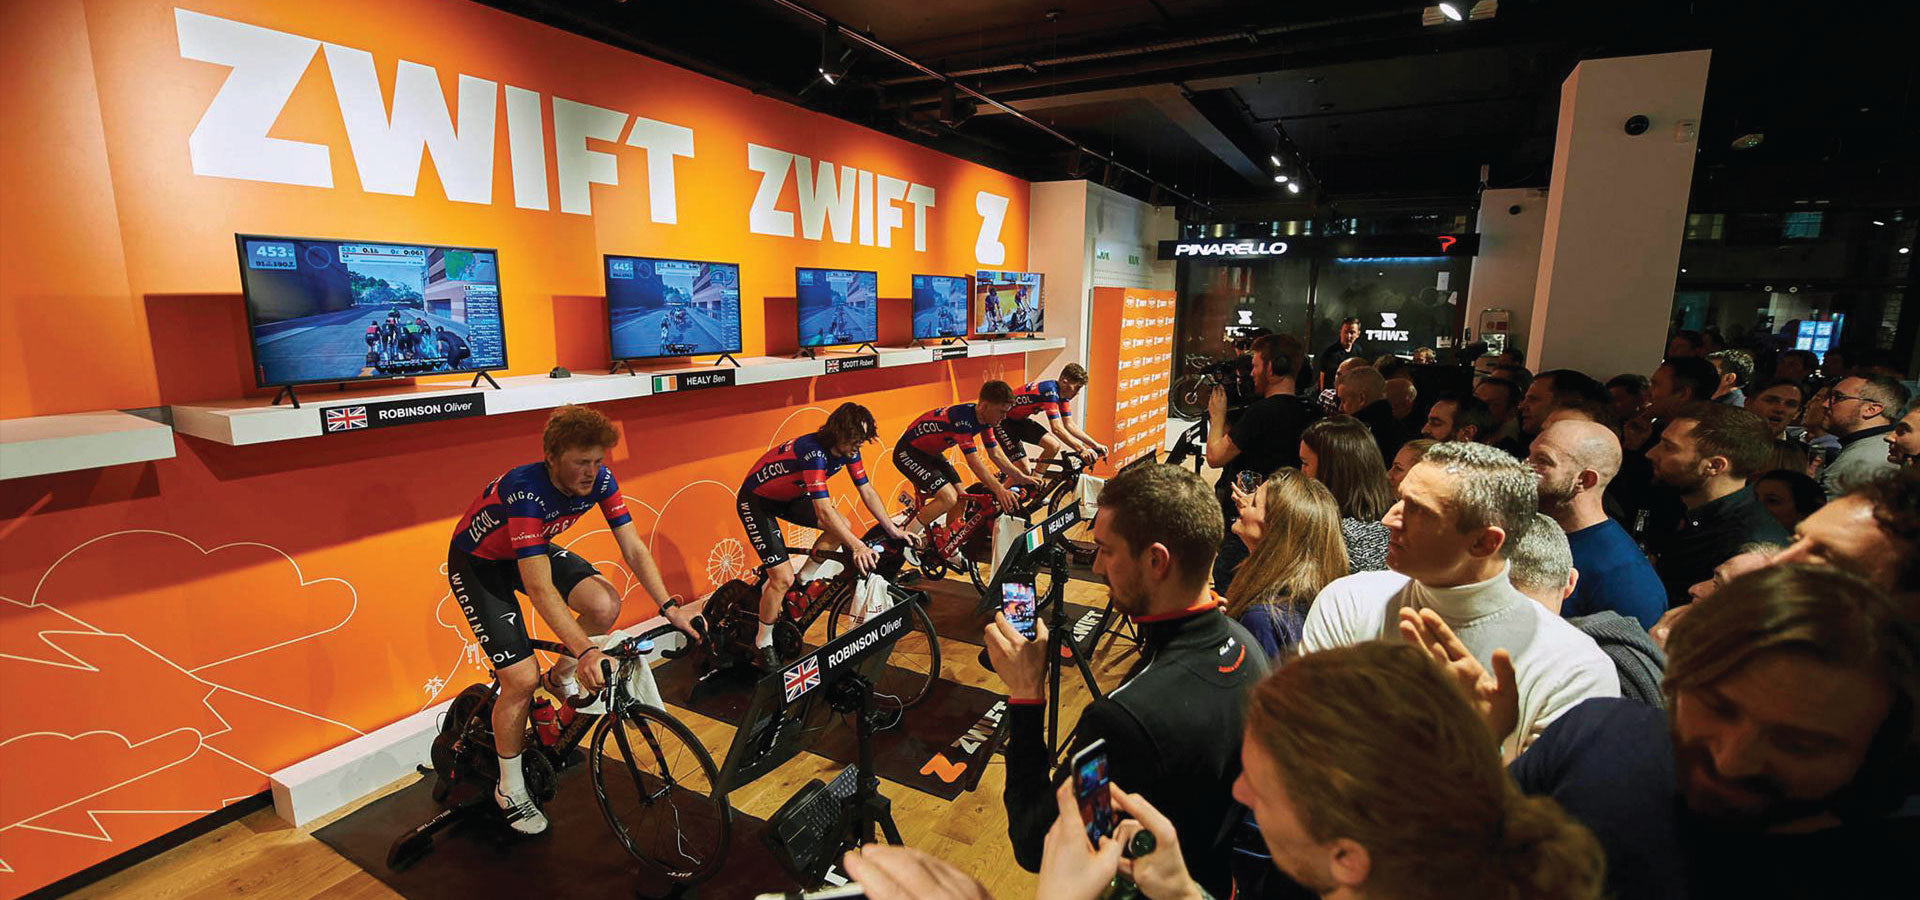 The 3 best indoor cycling apps